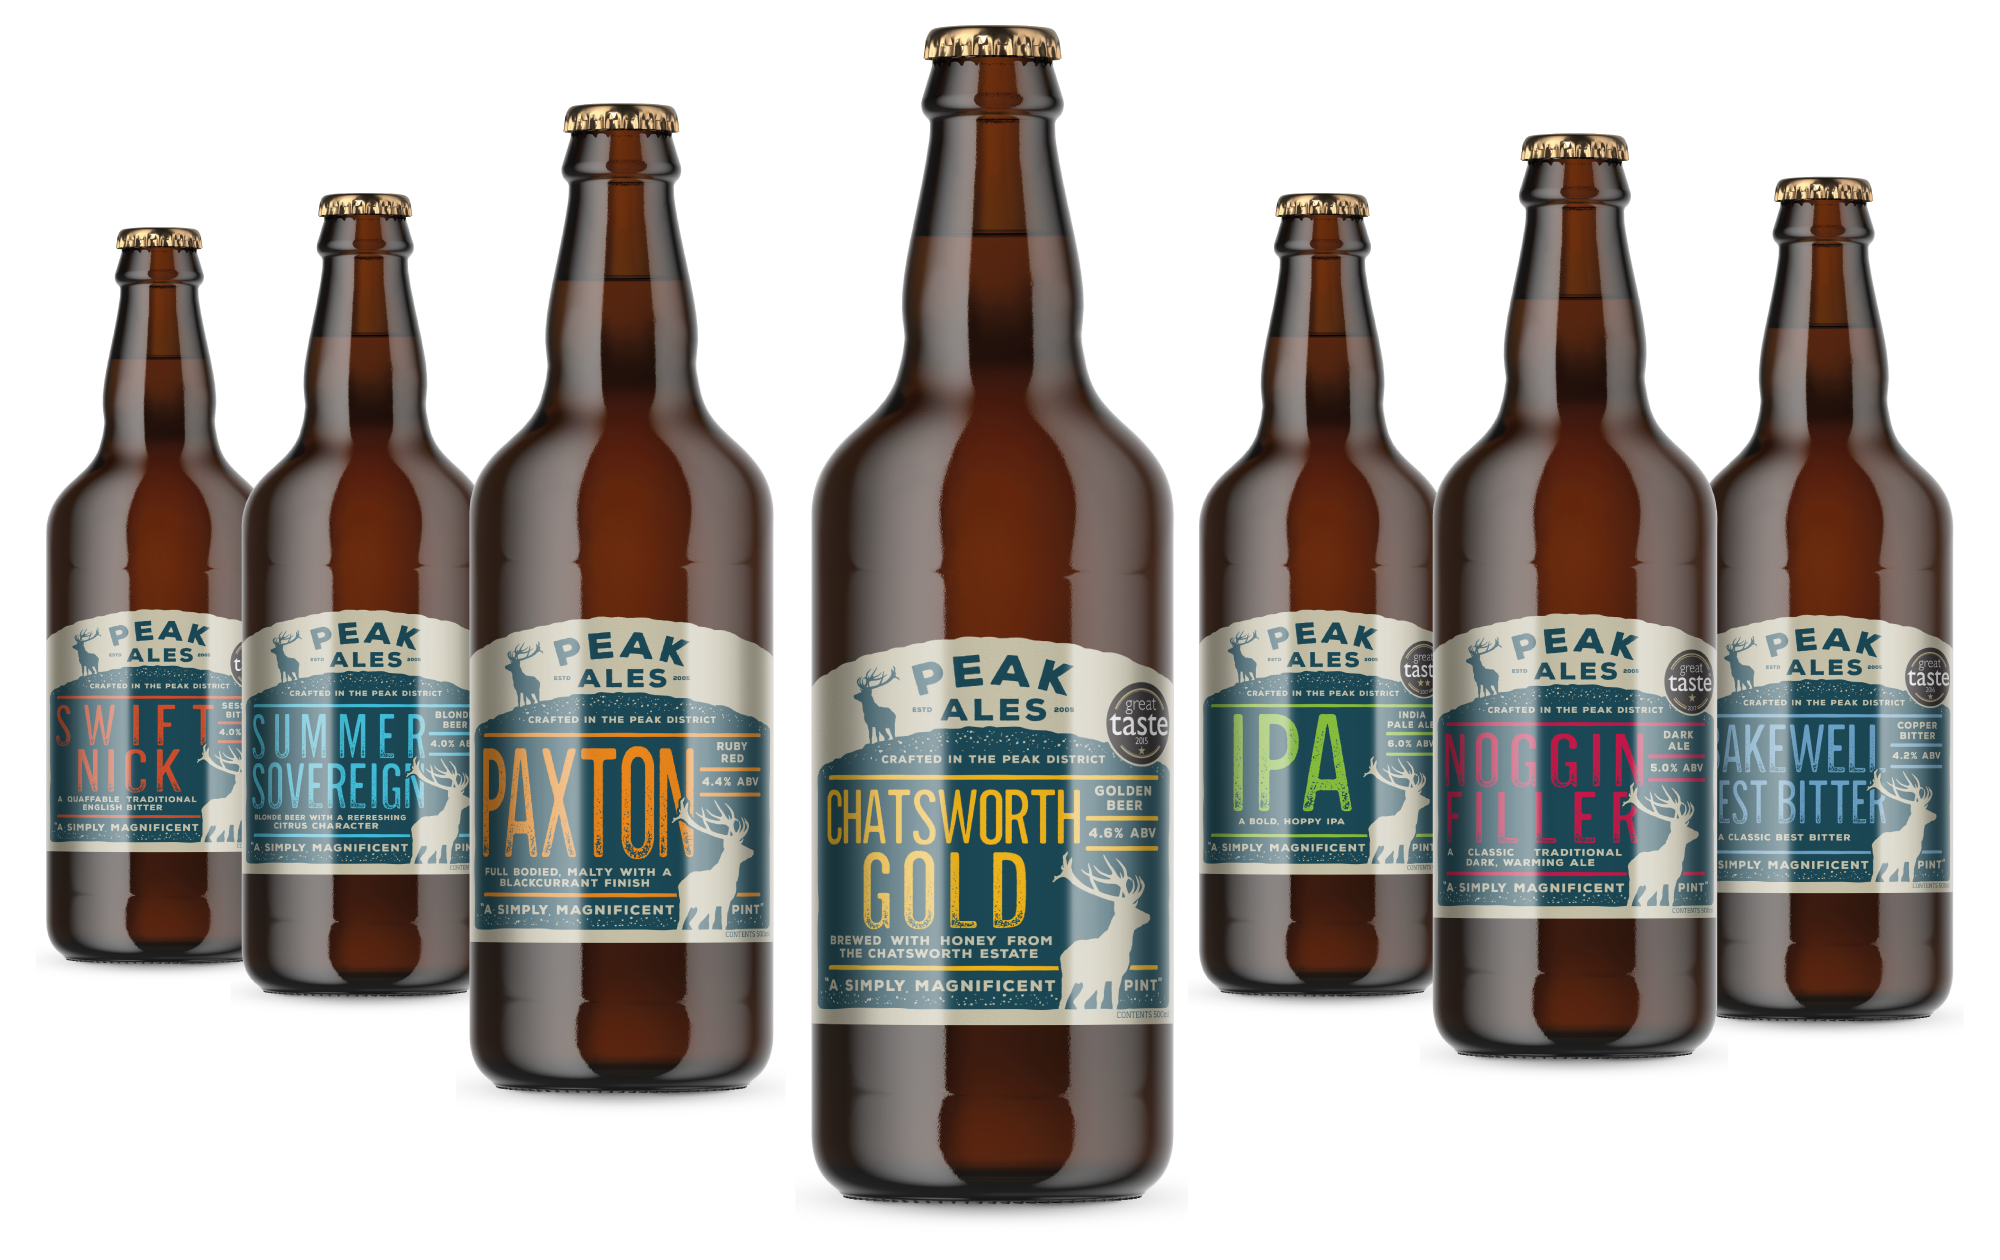 Peak Ales bottle label designs by AD Profile